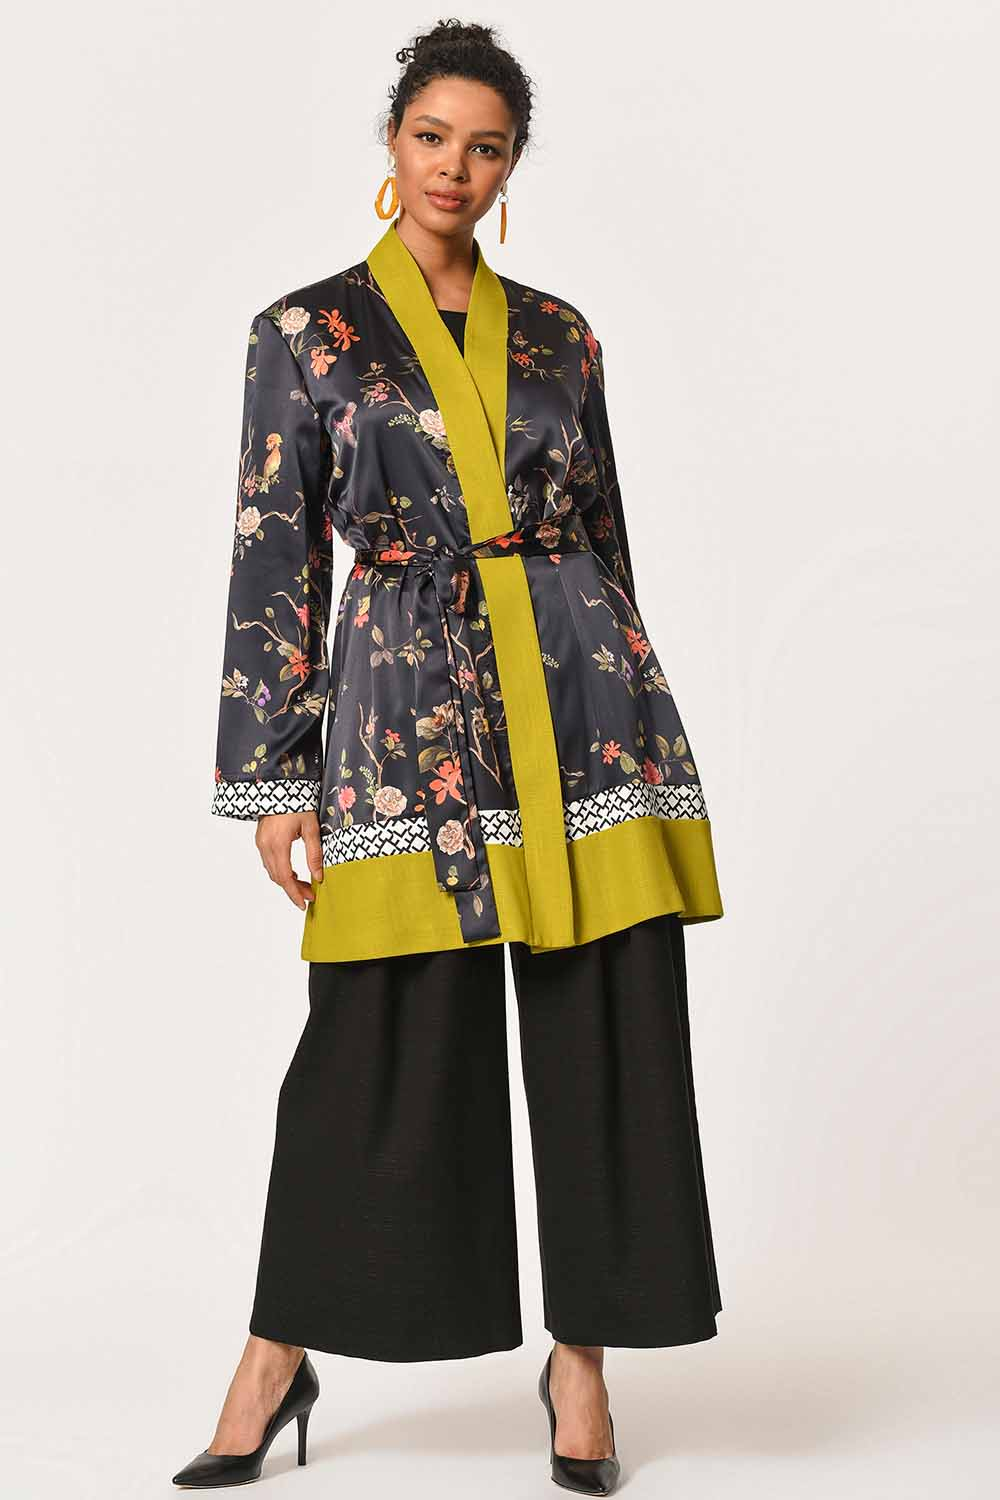 MIZALLE Three-Piece Patterned Kimono (Black/Green) (1)